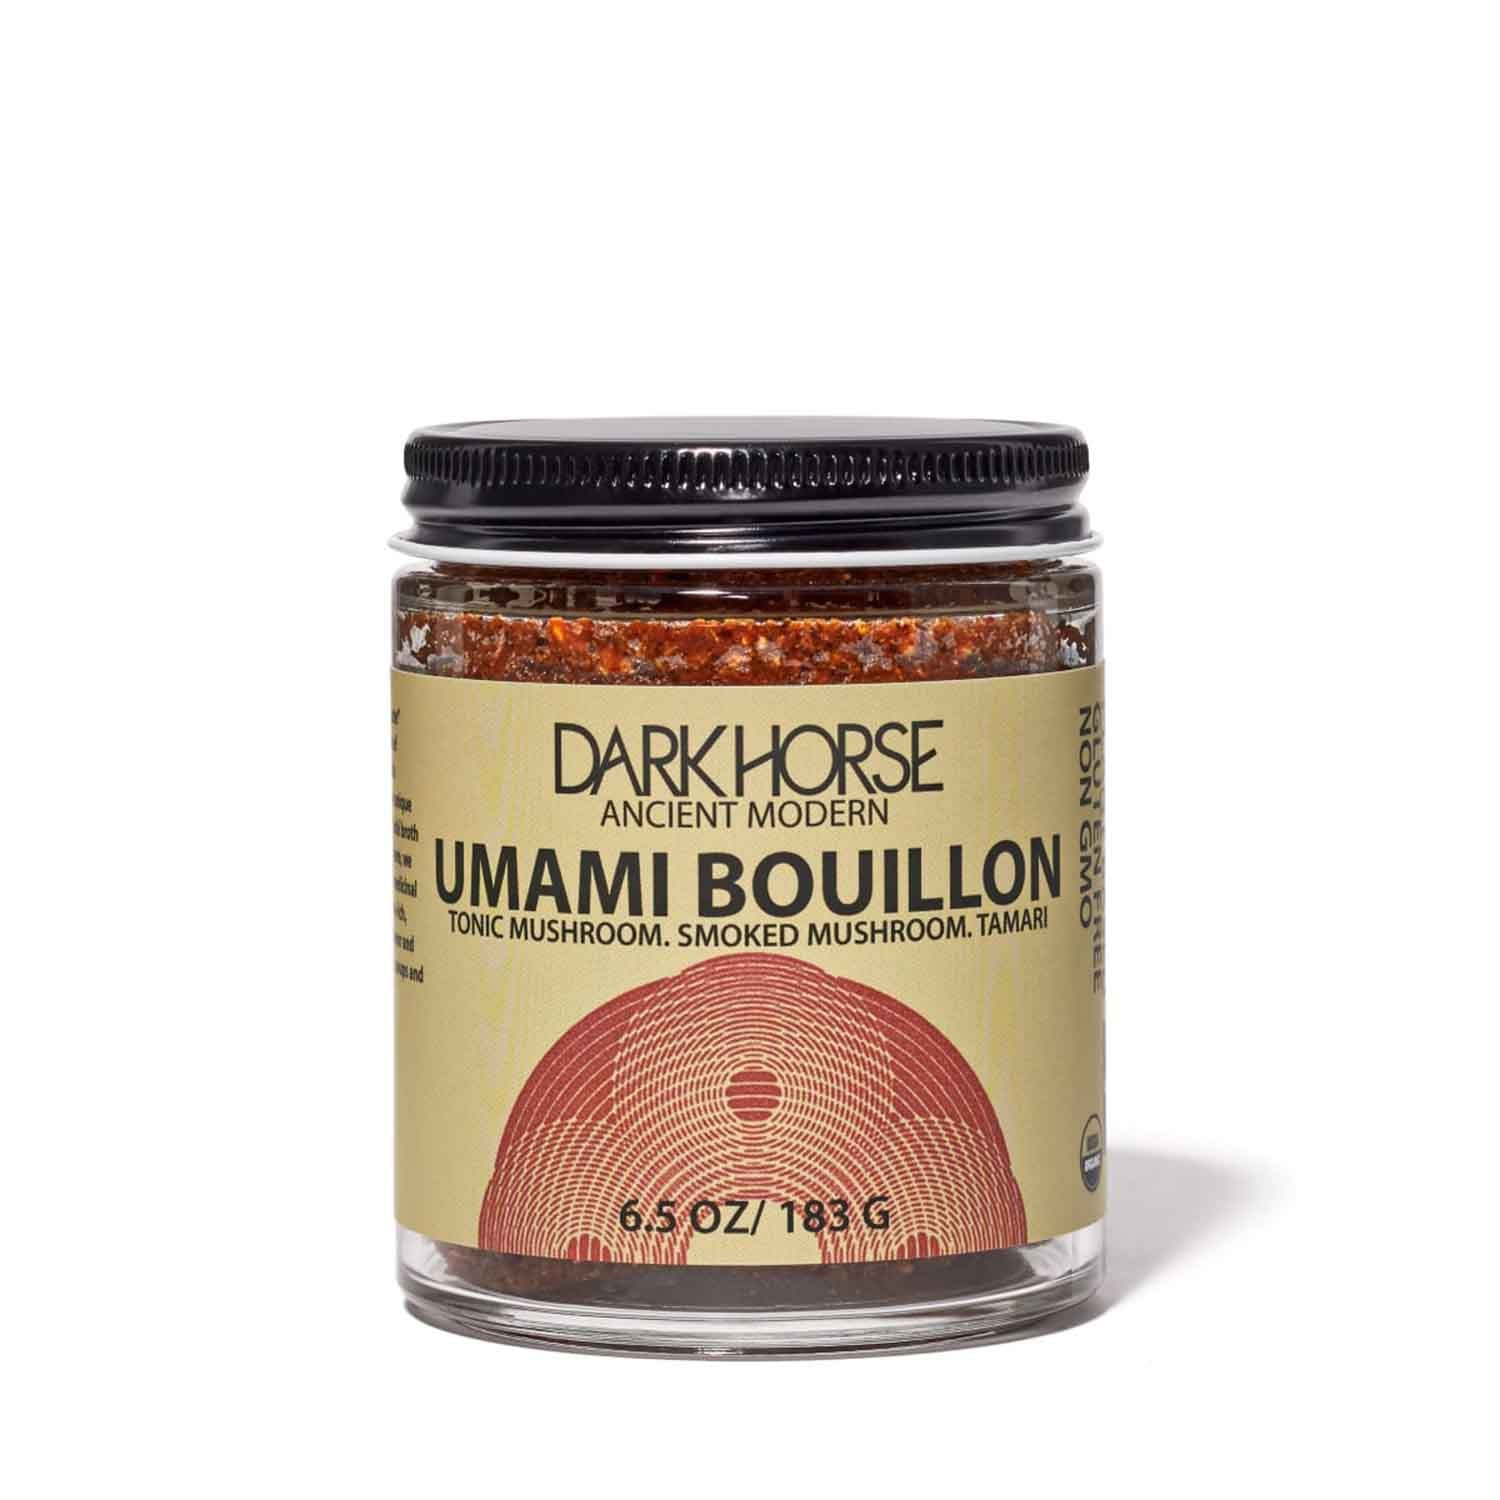 6.5oz jar of Umami Bouillon from Dark Horse